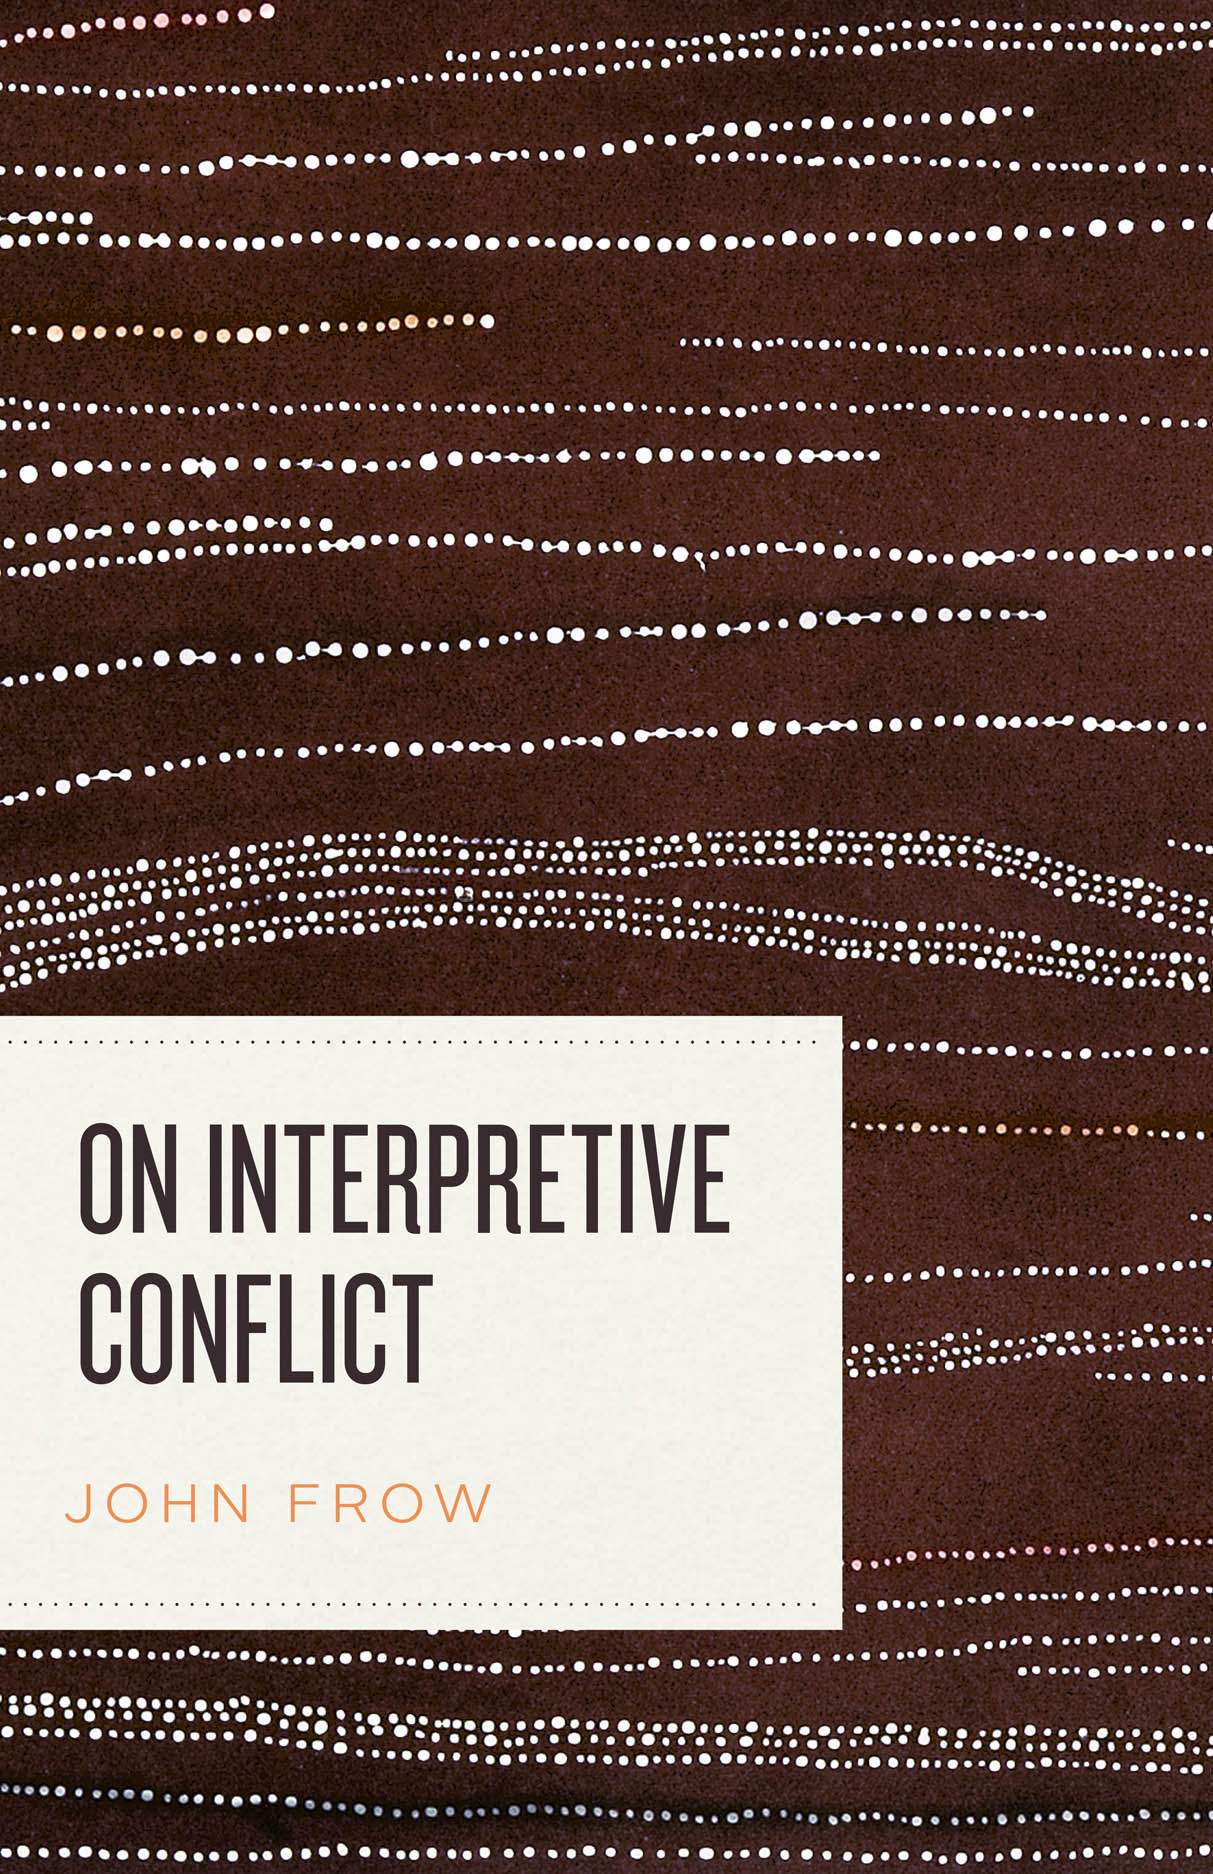 On Interpretive Conflict